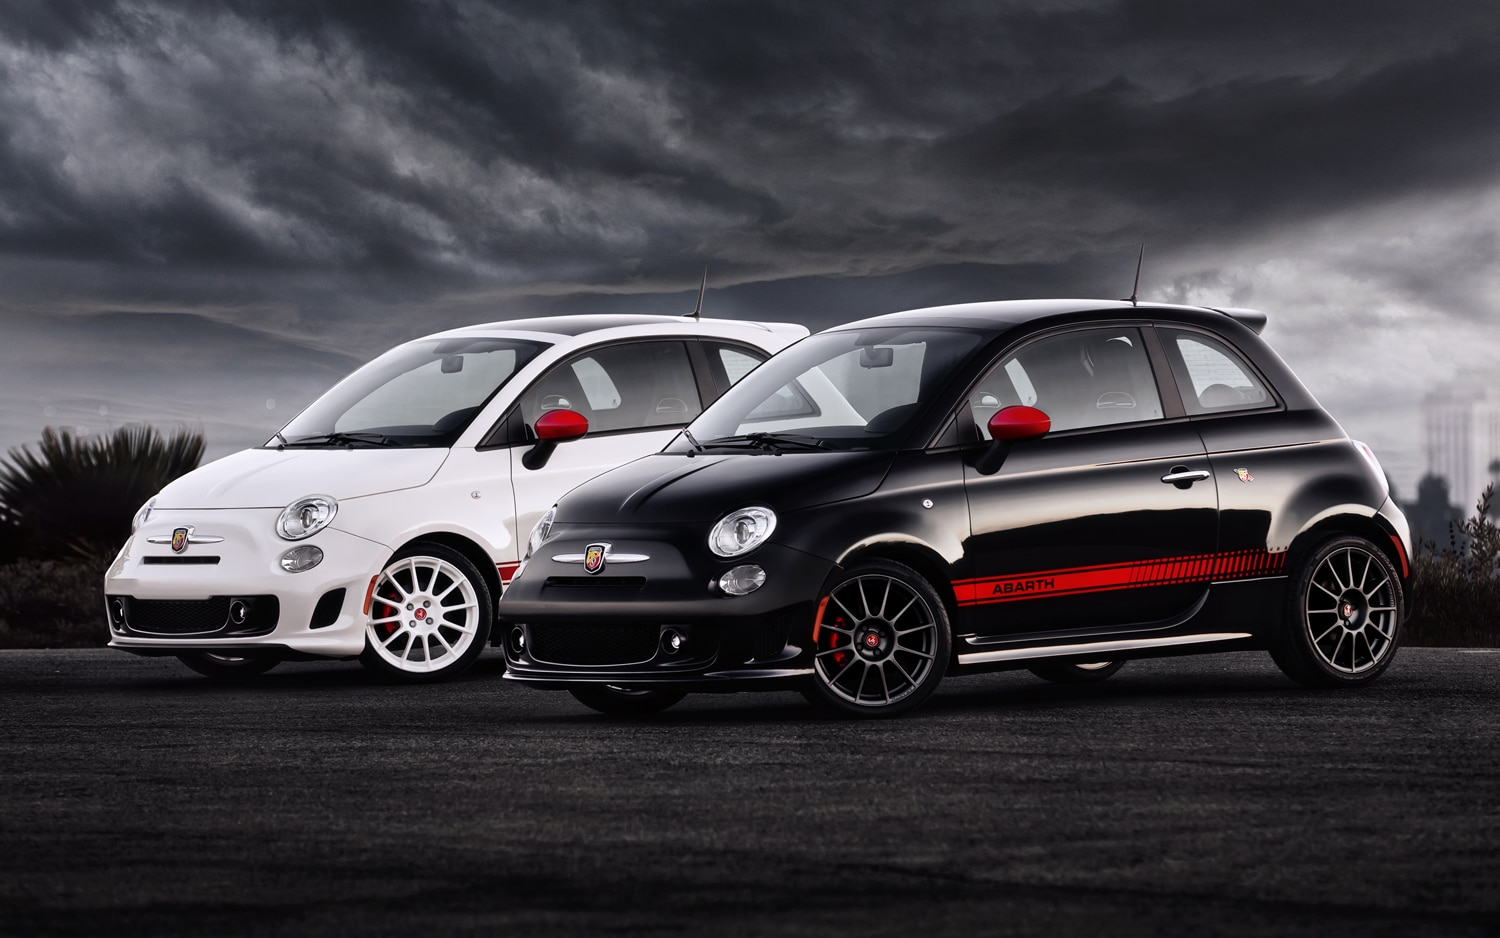 fiat prices 2012 500 abarth at 22 700 includes driving school with purchase. Black Bedroom Furniture Sets. Home Design Ideas